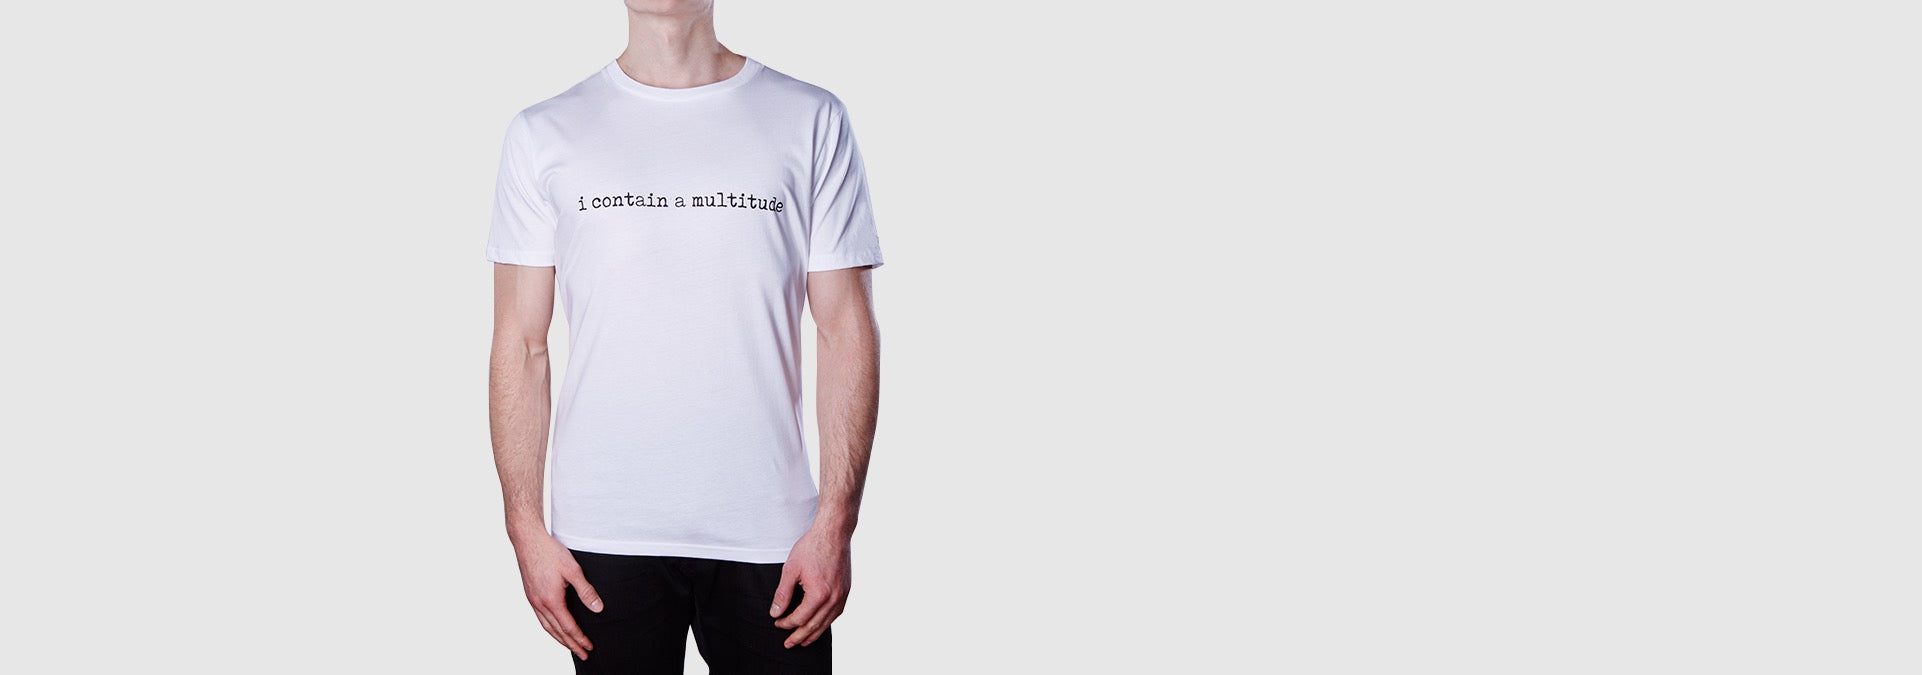 i contain a multitude  T-Shirt - White